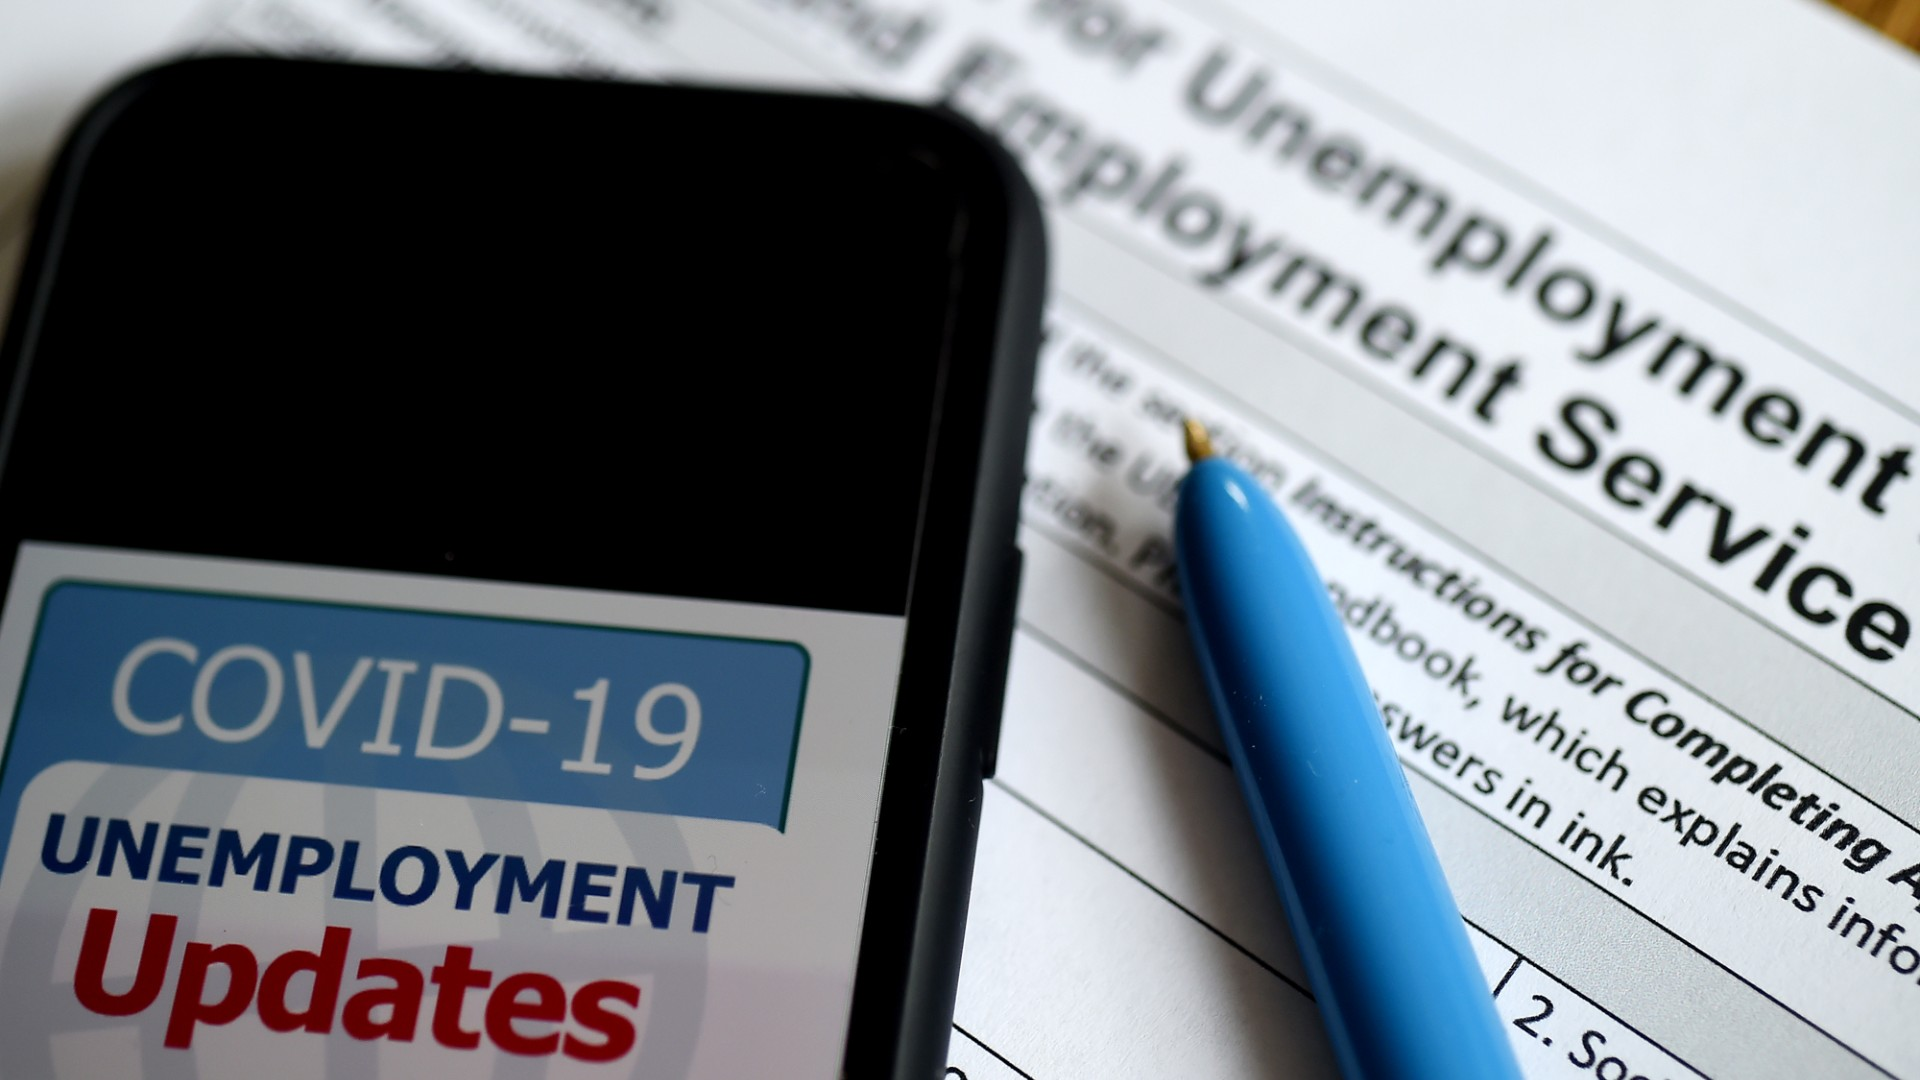 NY Touts Unemployment System, Even as Some Still Face Issues